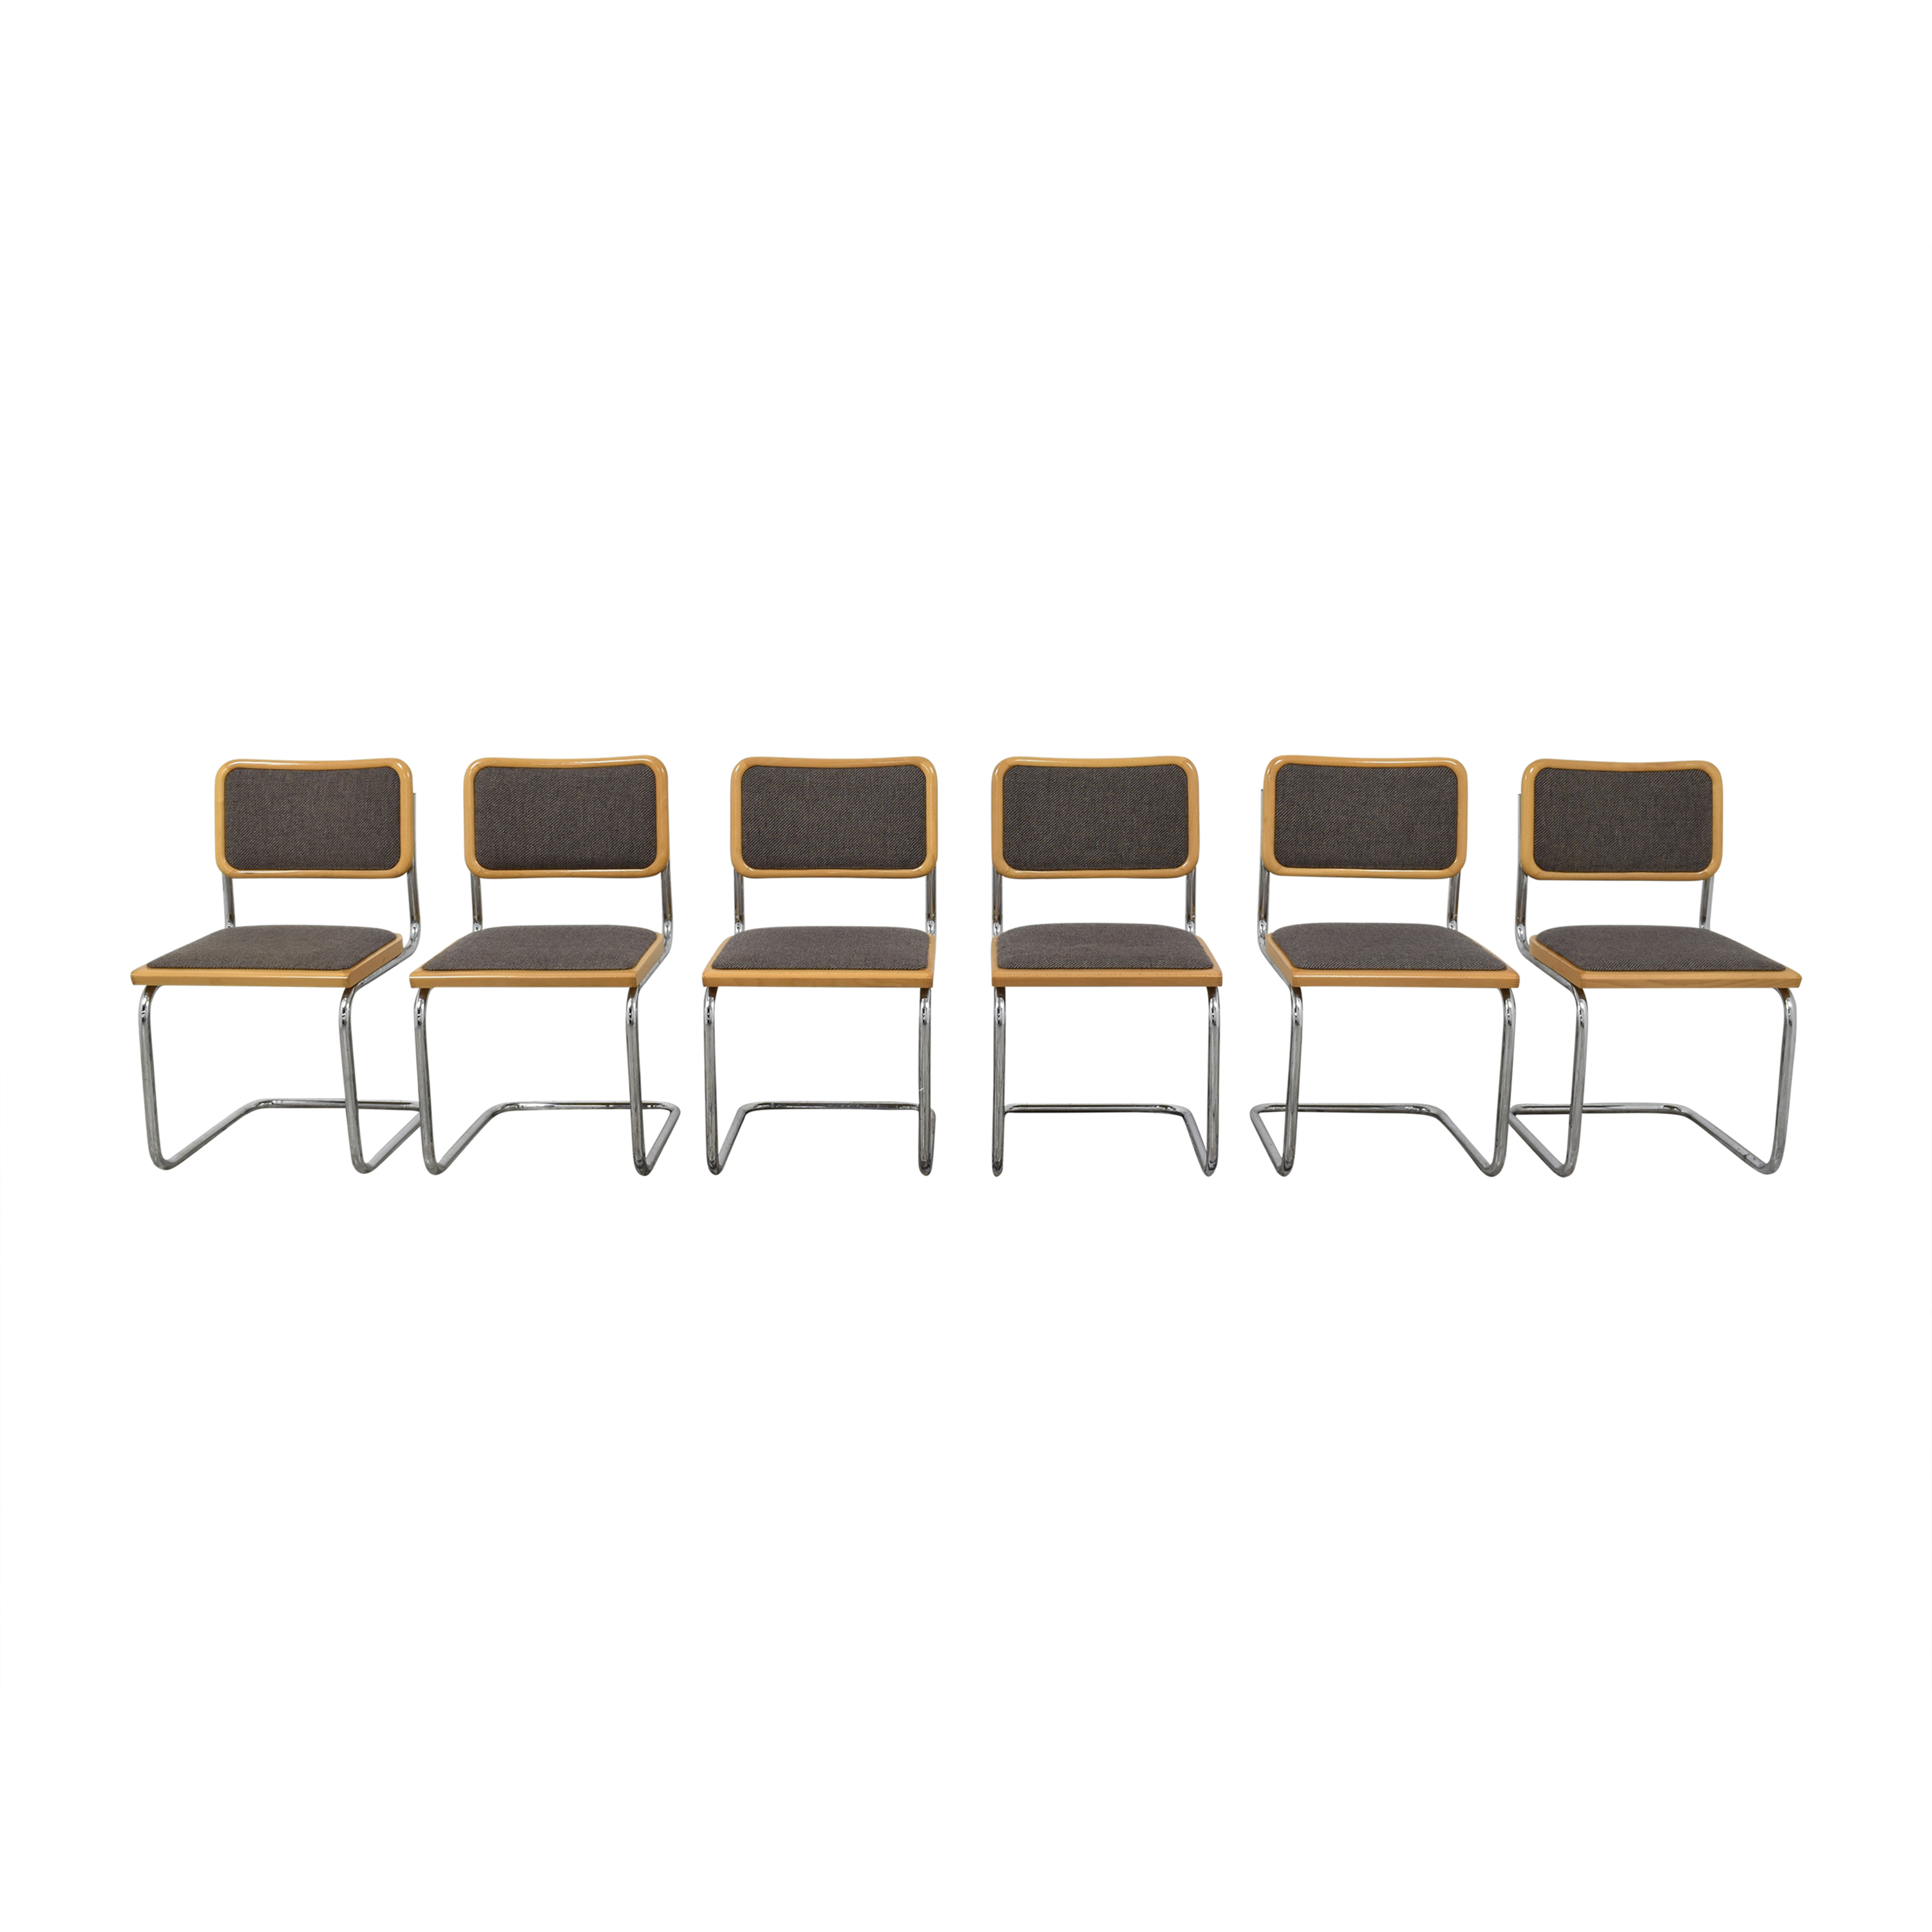 Cesca-Style Dining Chairs / Chairs